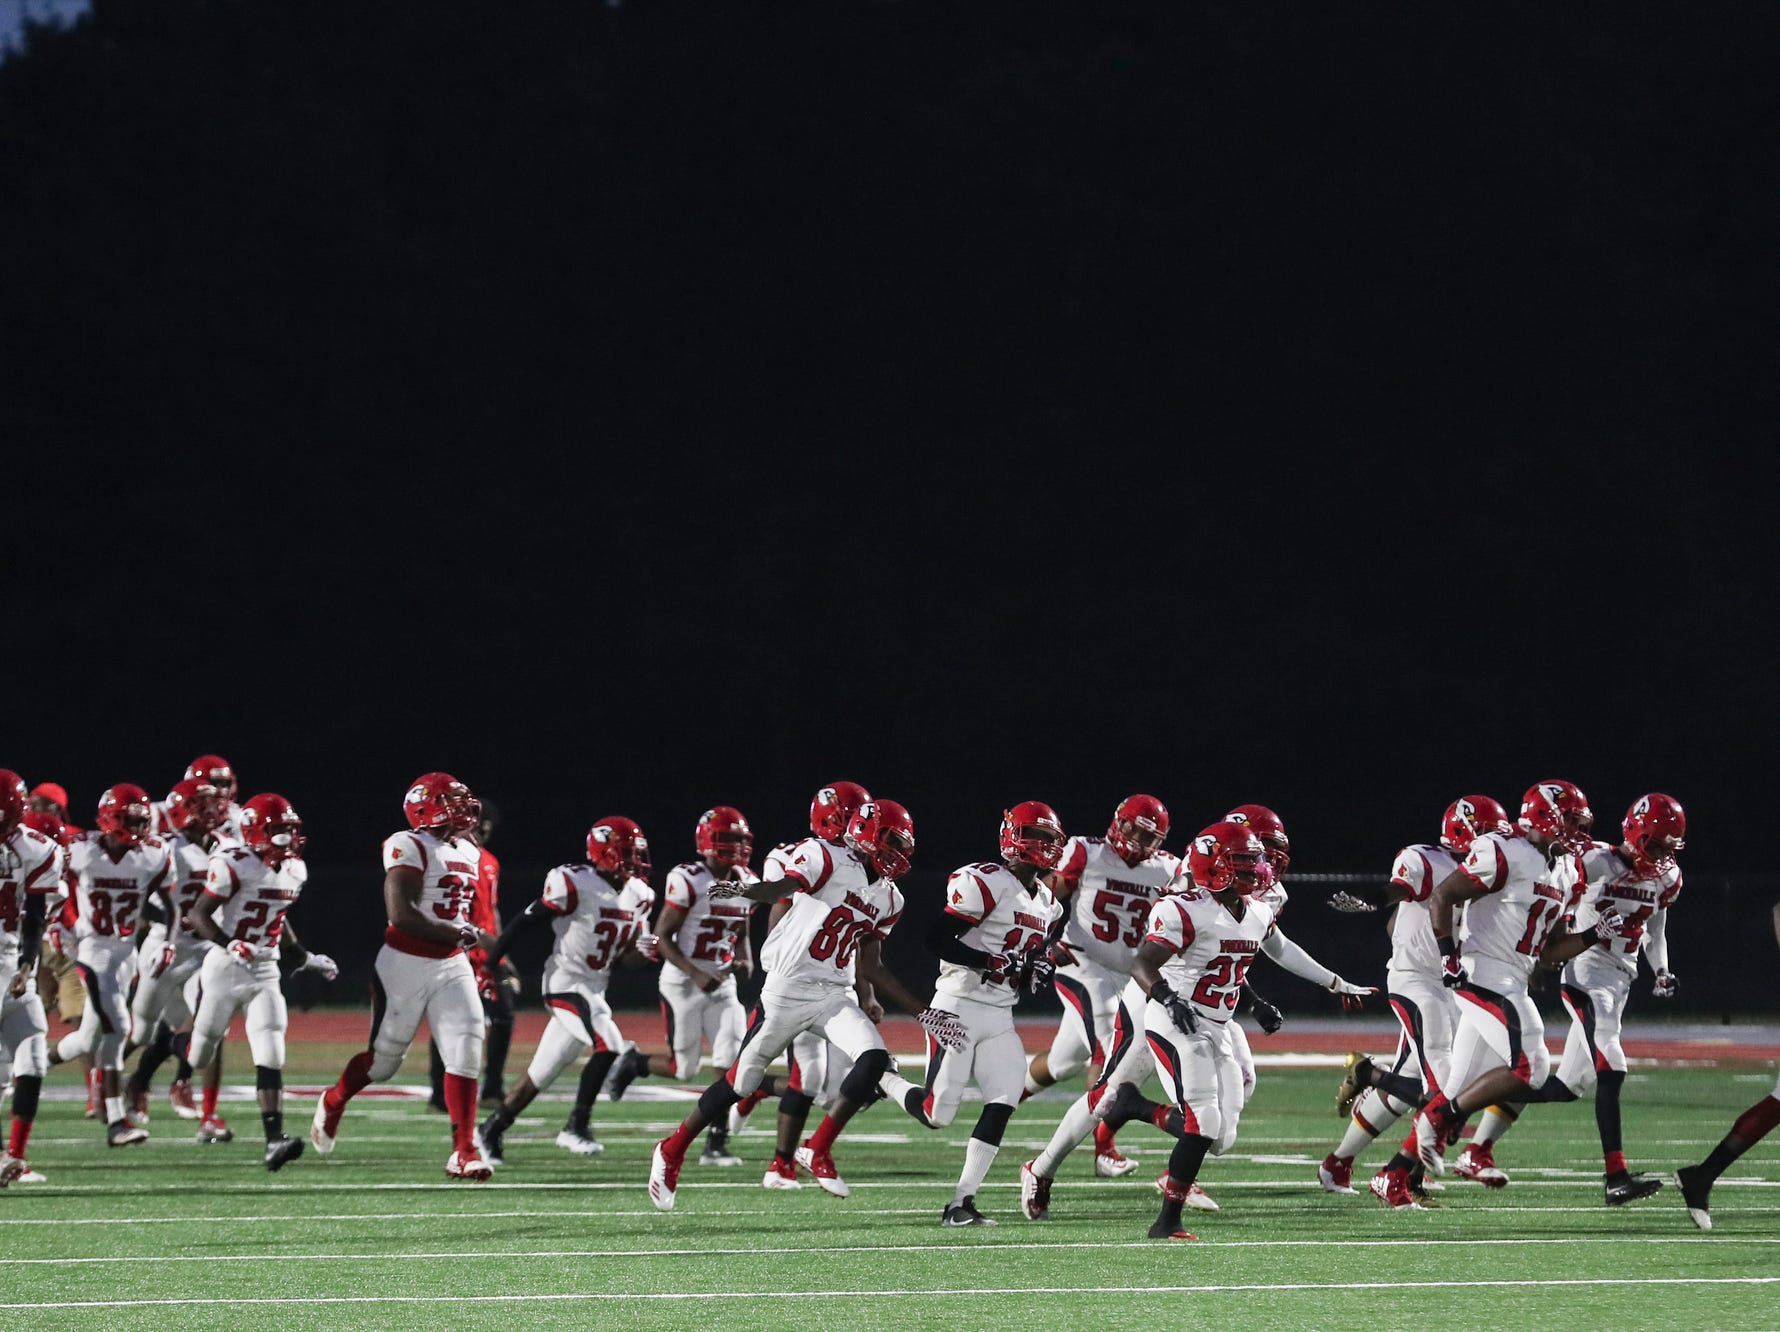 September 21 2018 - Wooddale's team runs onto the field before the start of Friday night's game at Collierville High School.